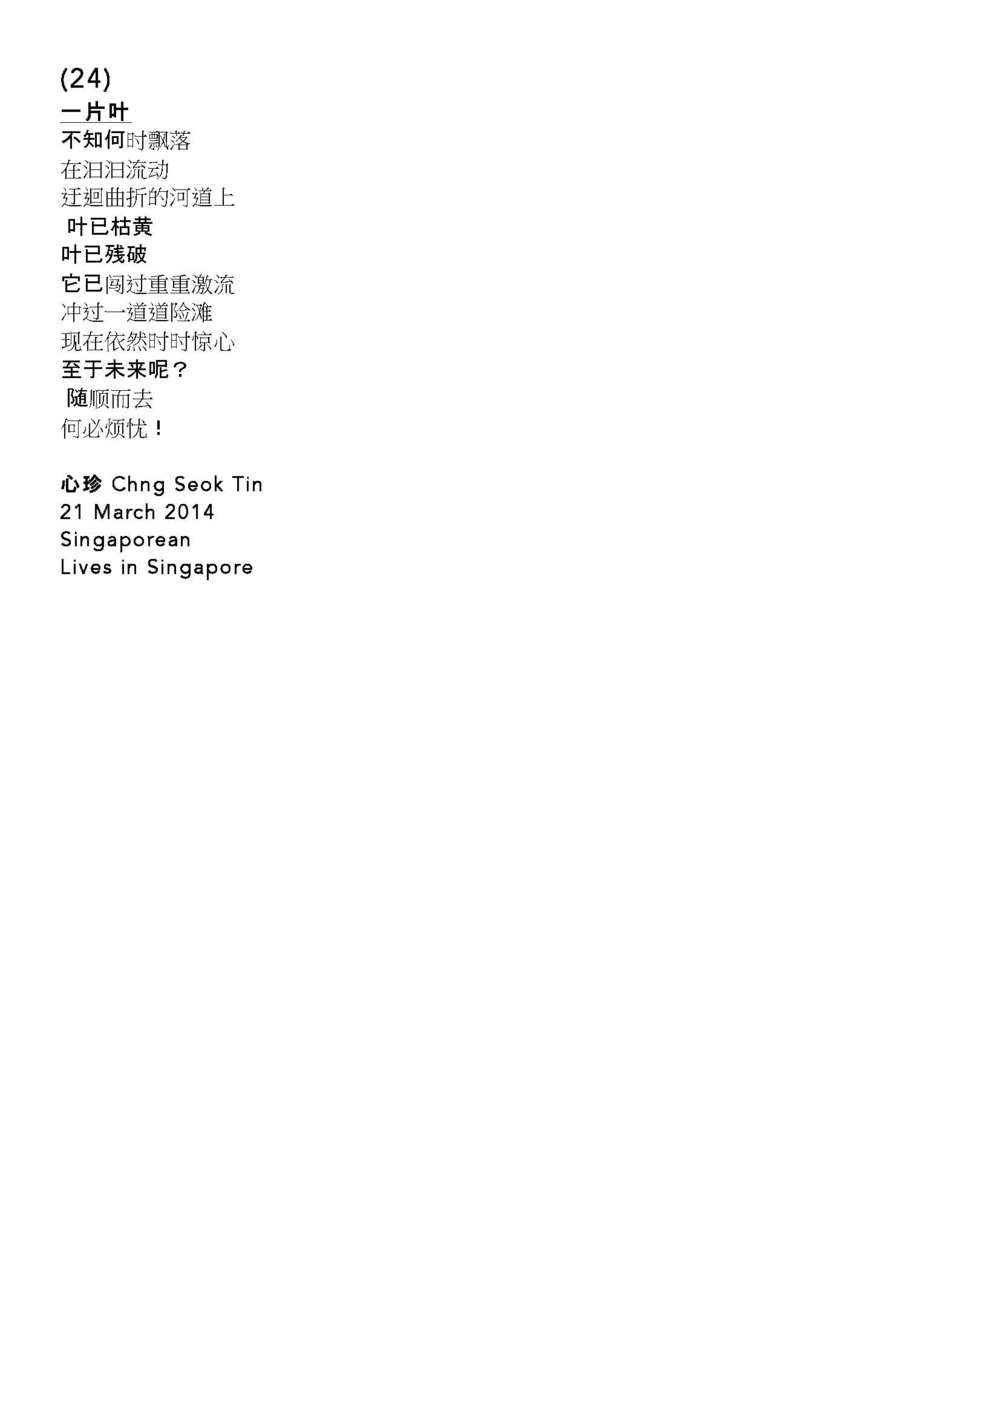 Poetry Collection - Everyone can Poetry_March 2014_Page_24.jpg